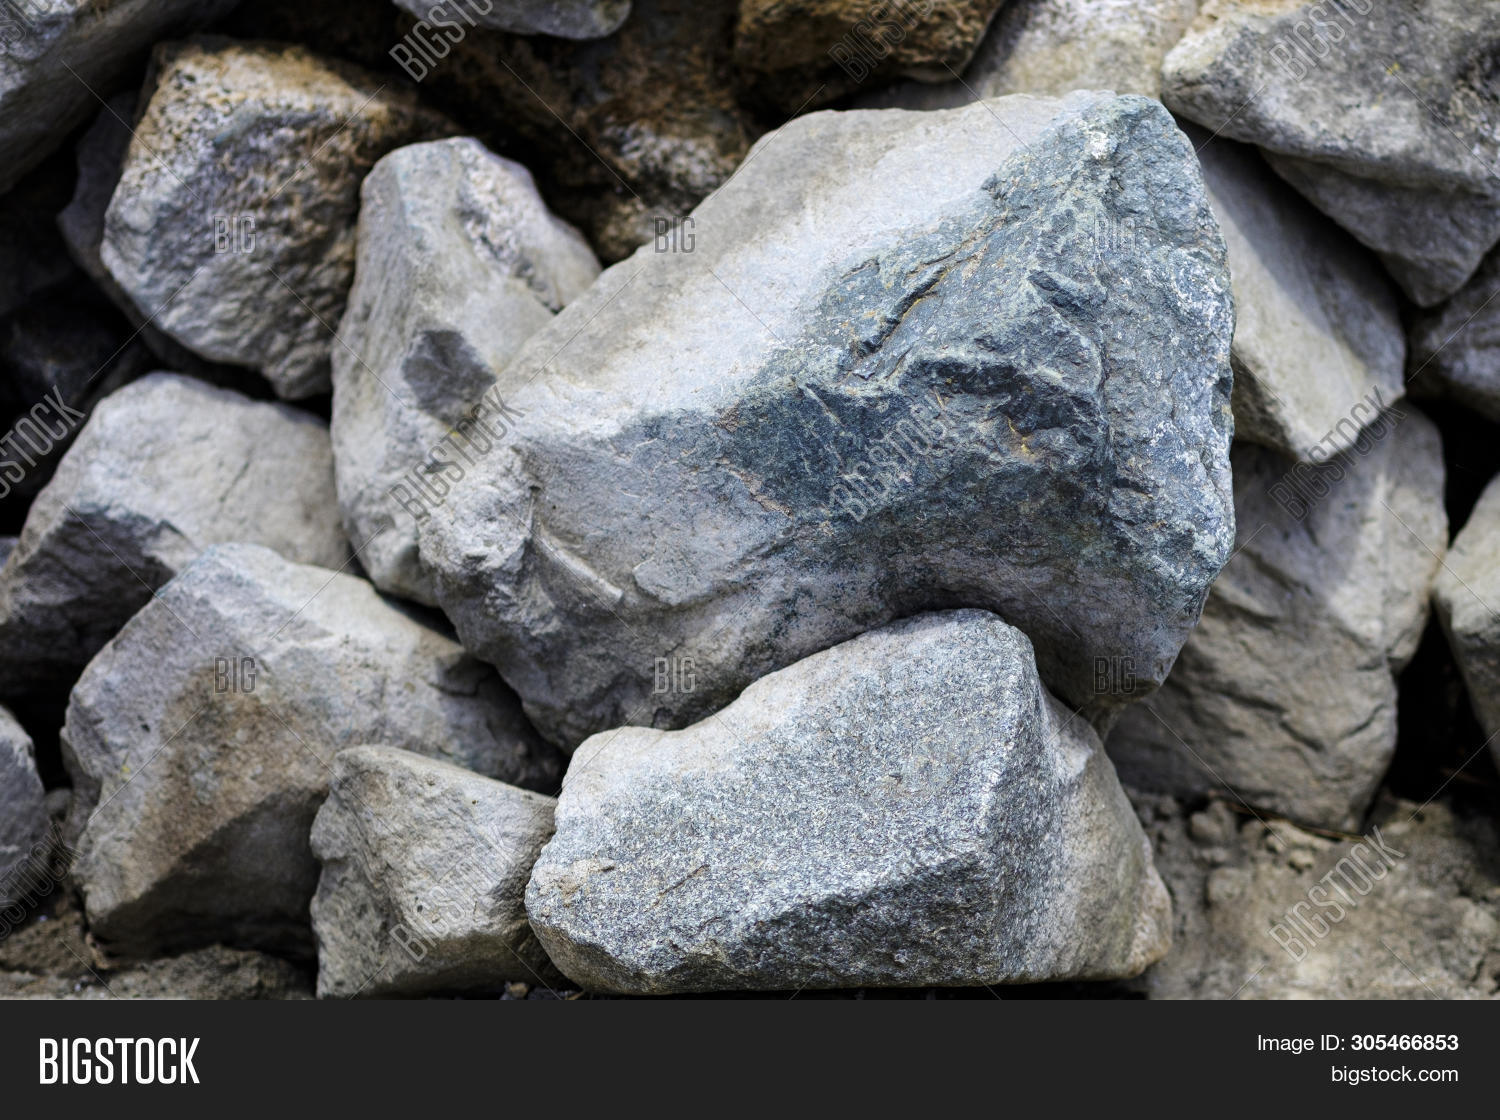 cobblestone,decoration,edge,forms,geology,gray,ground,heap,lake,land,large,little,lopar,material,nature,ocean,pattern,pebble,pebbly,petrification,river,rock,scene,sea,seashore,shape,shiny,small,smooth,stone,stony,structure,studio,summer,texture,textured,underwater,wall,wallpaper,water,wave